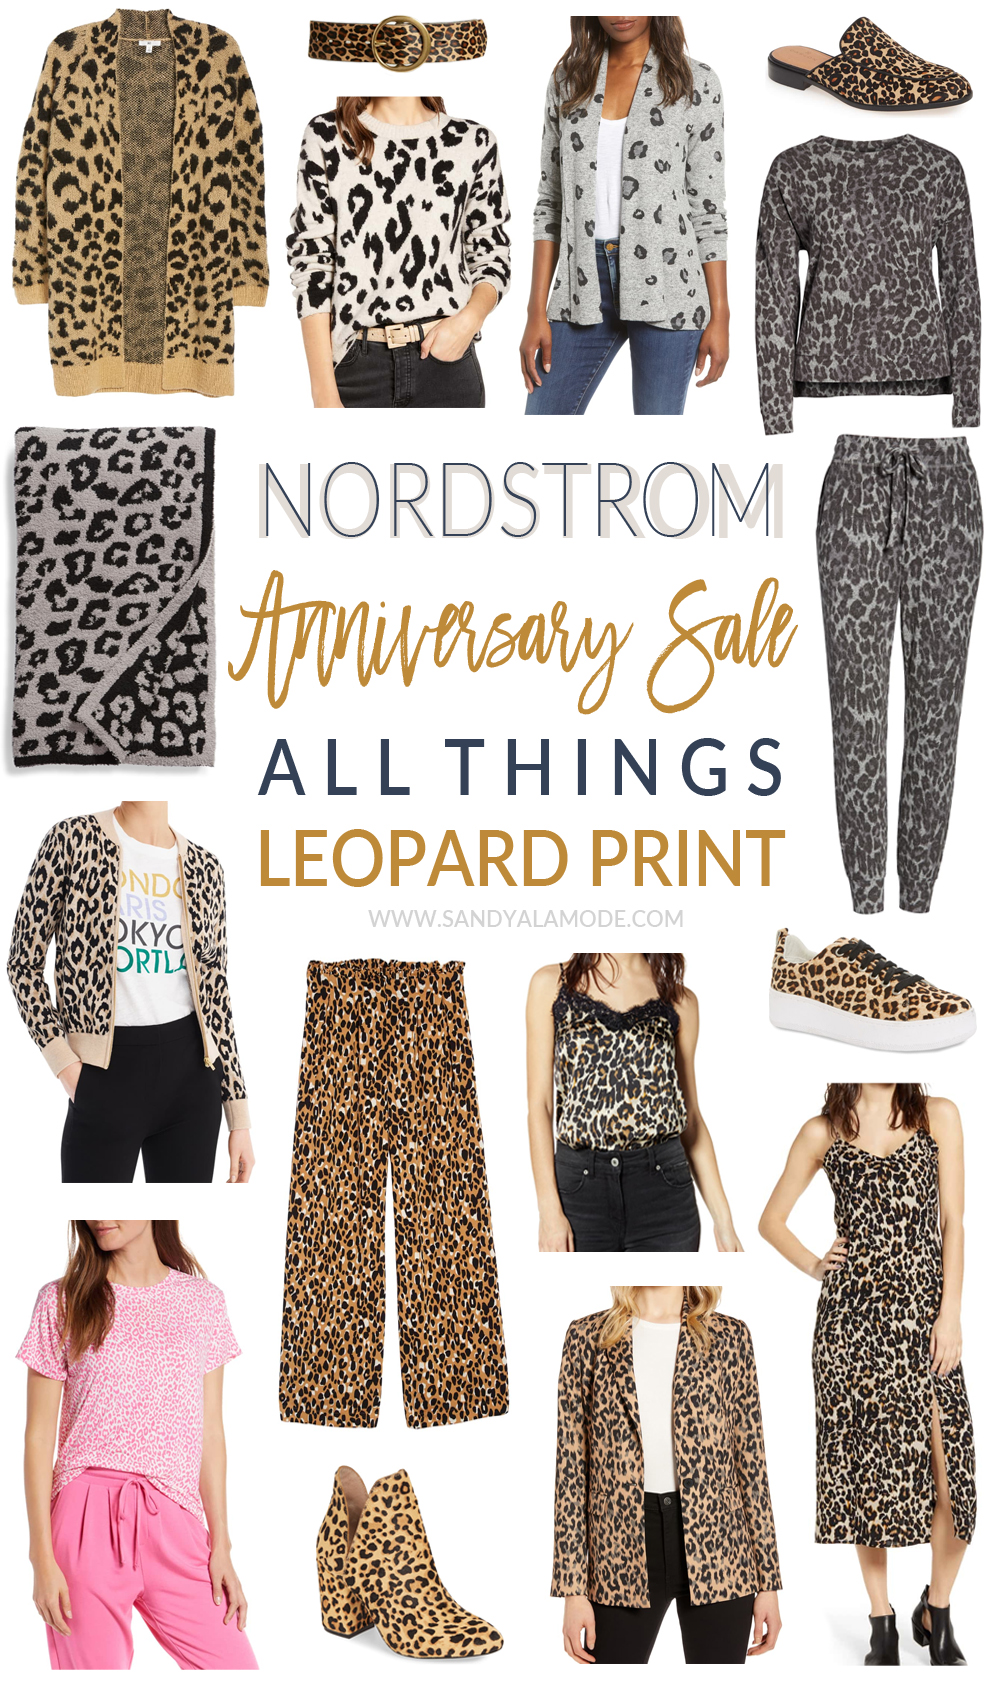 Nordstrom Anniversary Sale 2019 All Things Leopard